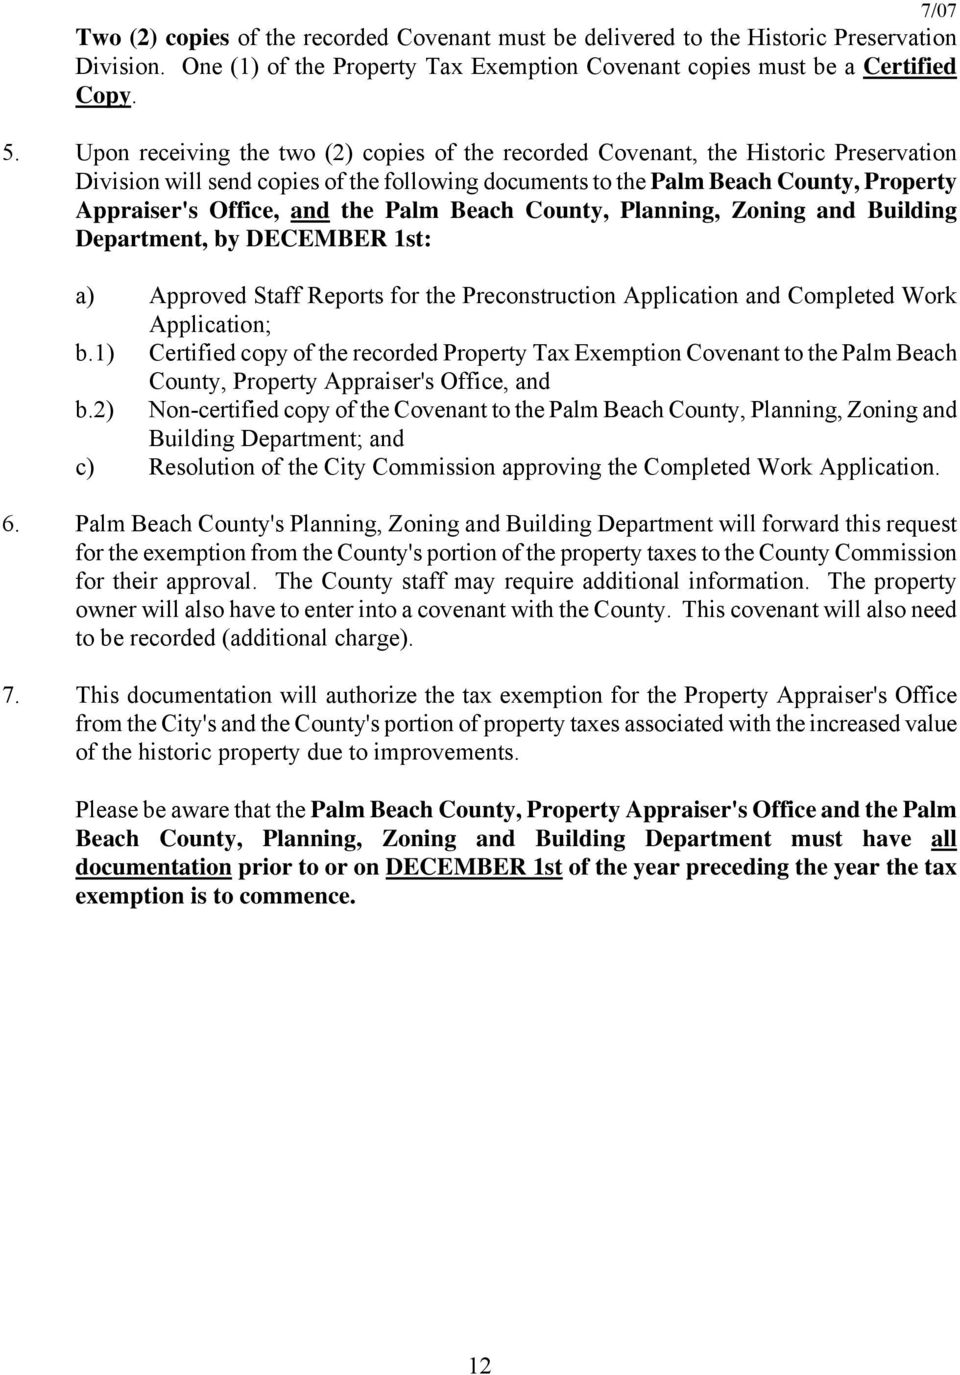 the Palm Beach County, Planning, Zoning and Building Department, by DECEMBER 1st: a) Approved Staff Reports for the Preconstruction Application and Completed Work Application; b.